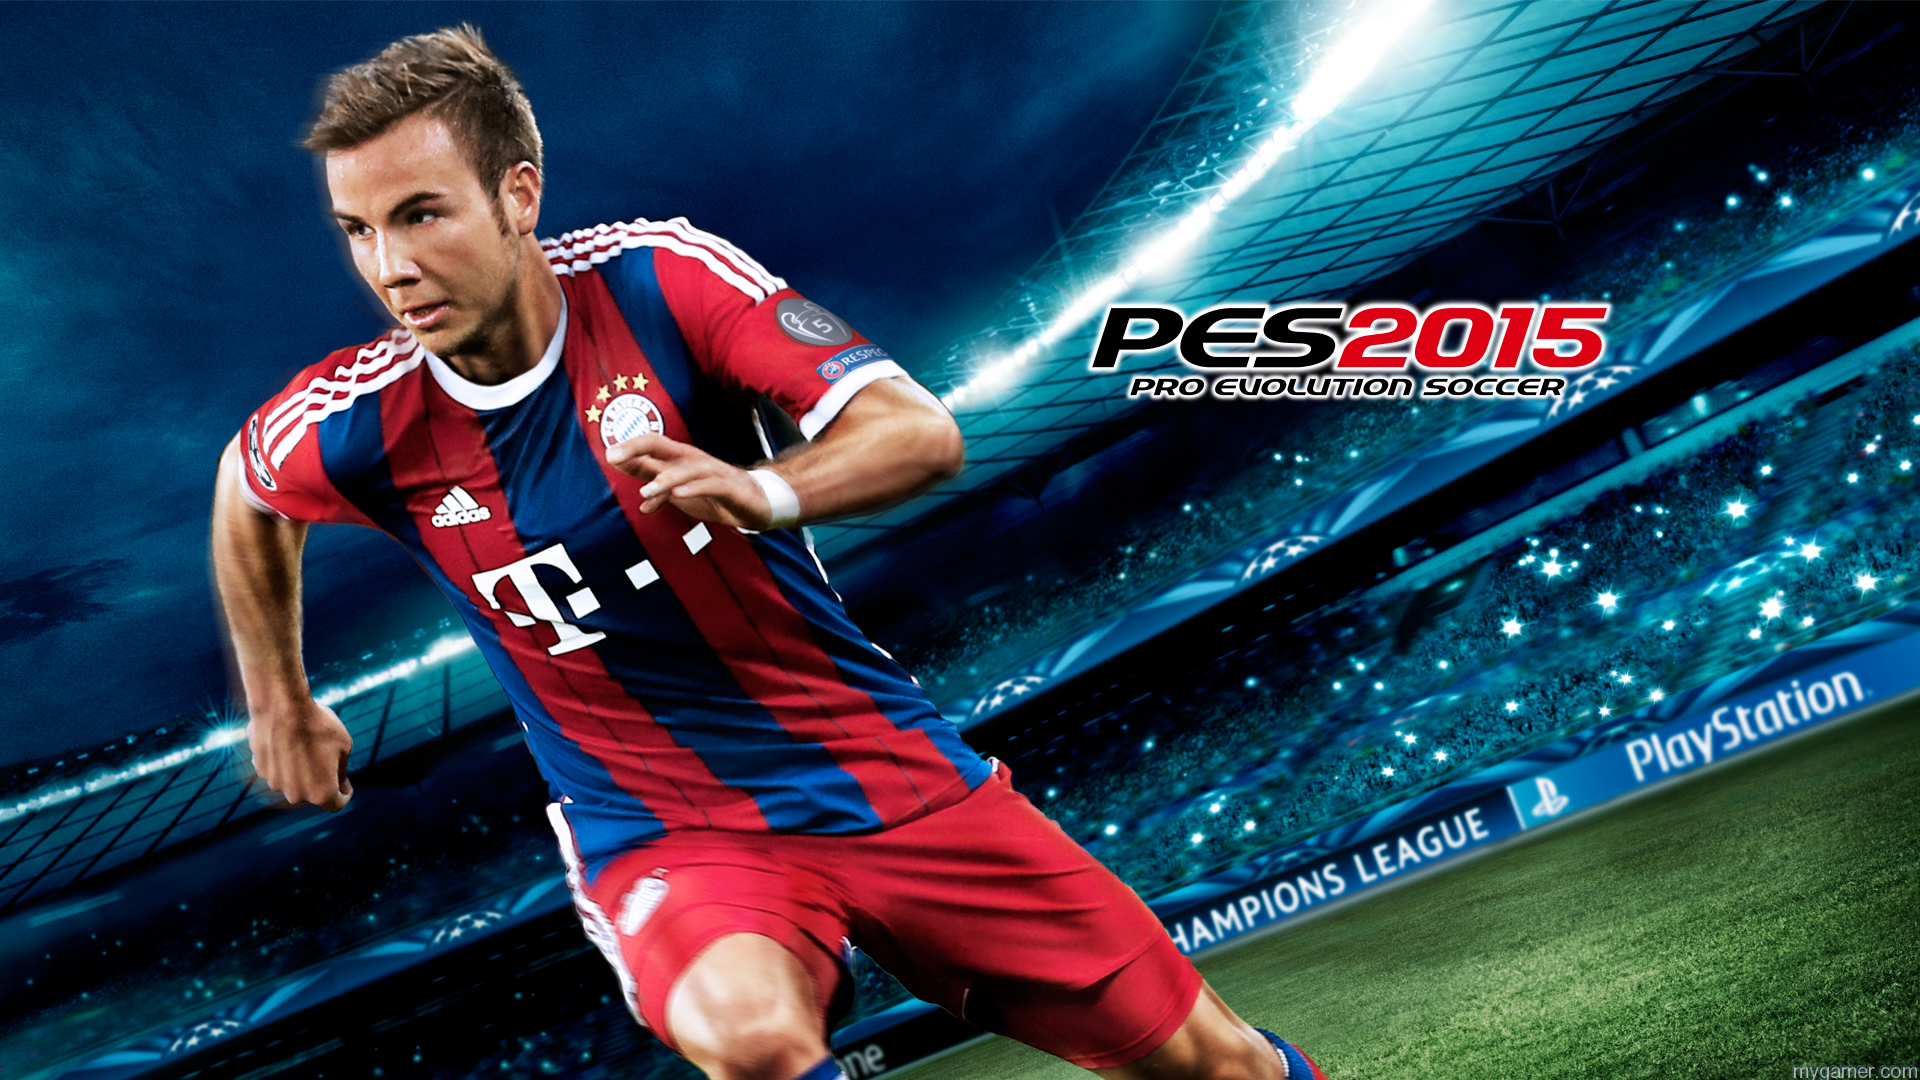 Konami Drops the Price of PES 2015 Konami Drops the Price of PES 2015 PES2015